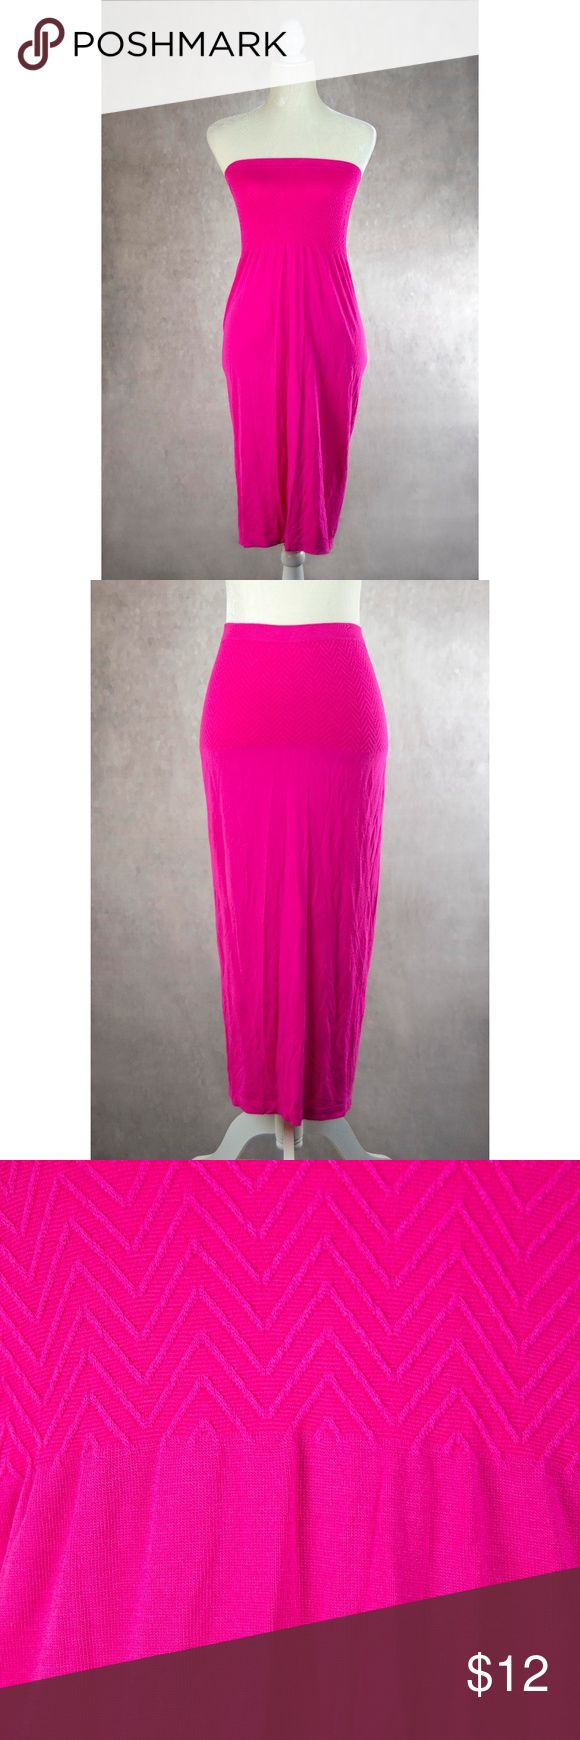 "Cristina Love Fuchsia Tube Dress S Wear this fuchsia stretchy knit piece as a strapless dress pulled up around the chest or as a maxi skirt worn at the waist. The tag says ""one size"" but would best fit a size small or medium. Dress laying flat measures approx. 32"" long, 14""-18"" across waist, 11""-15"" across chest, and 19""-22"" across hip. New without tags. Cristina Love Dresses Strapless"